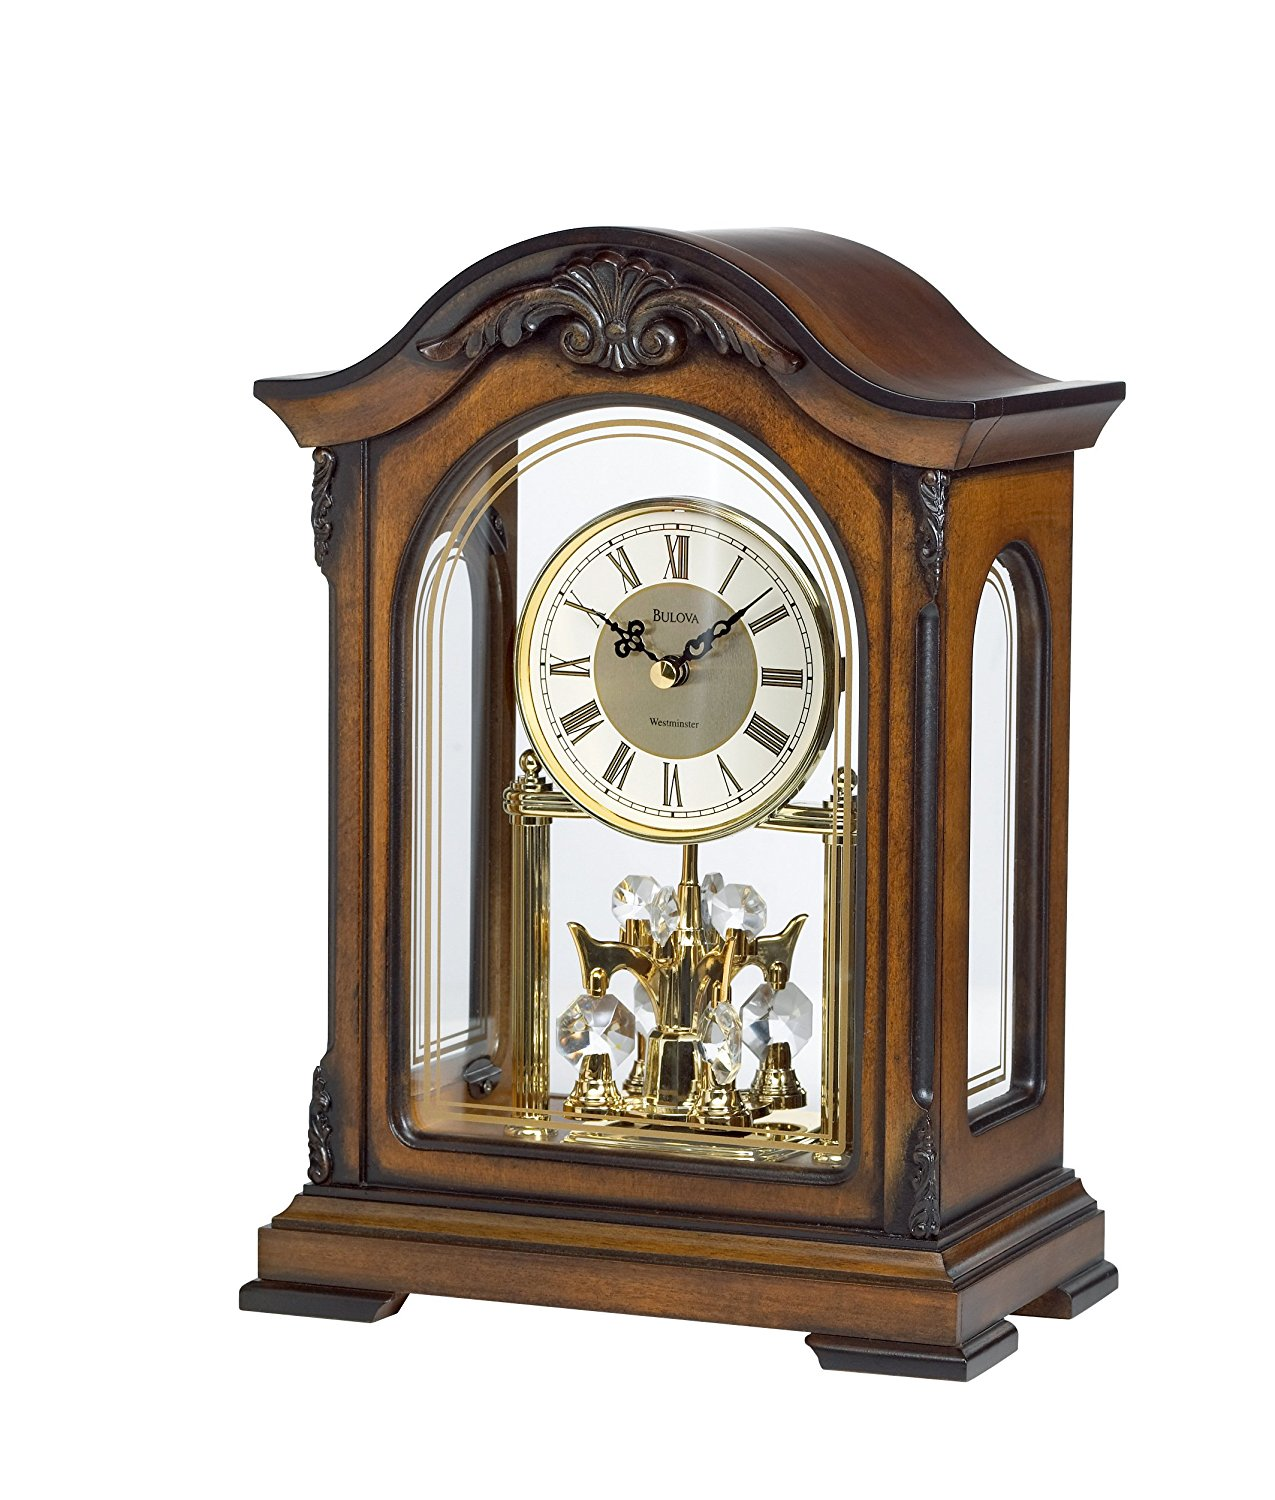 Bulova bardwell mantel clock instructions